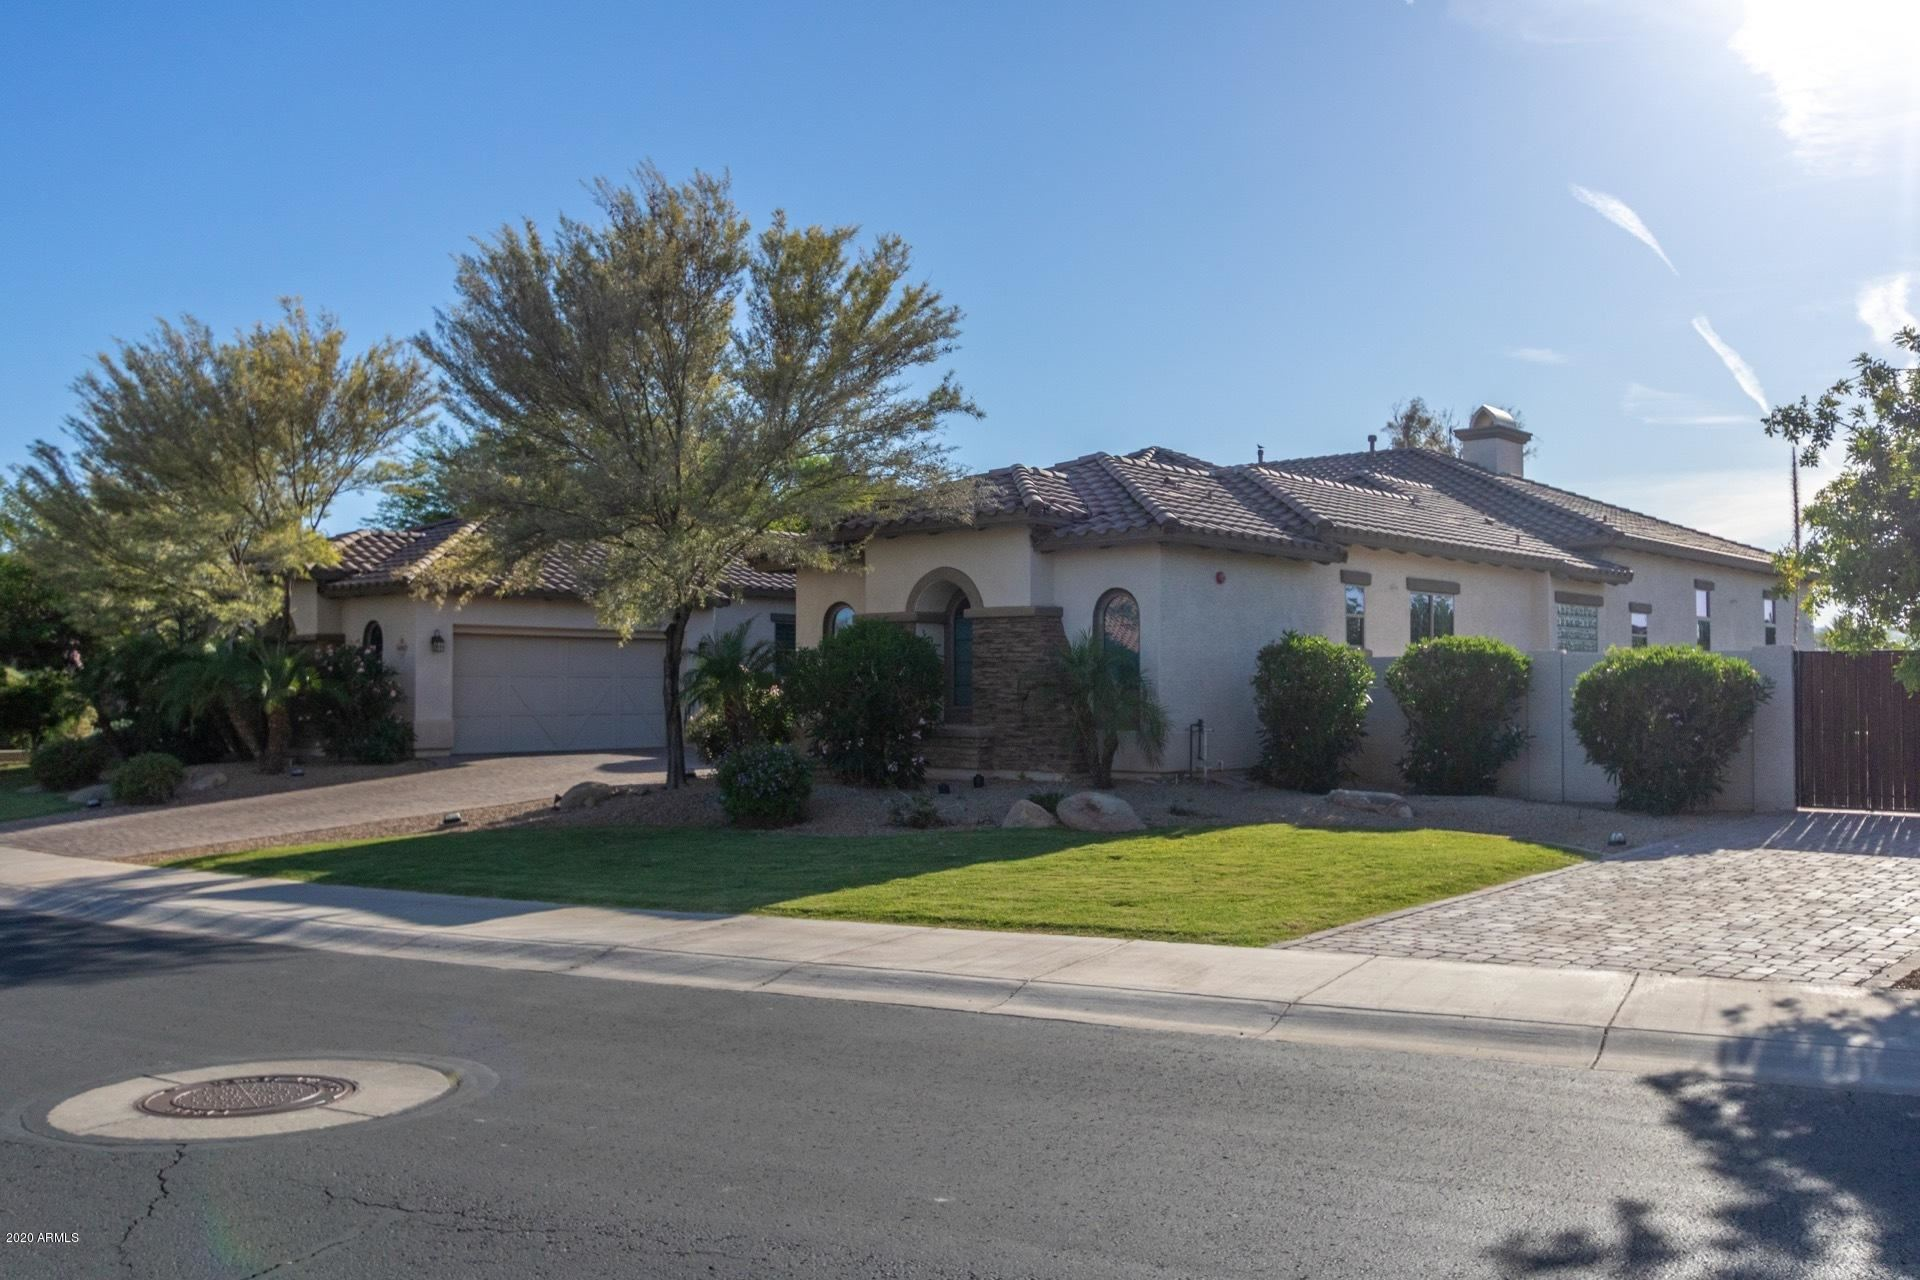 4882 N BARRANCO Drive, Litchfield Park, AZ 85340 - MLS#: 6081307